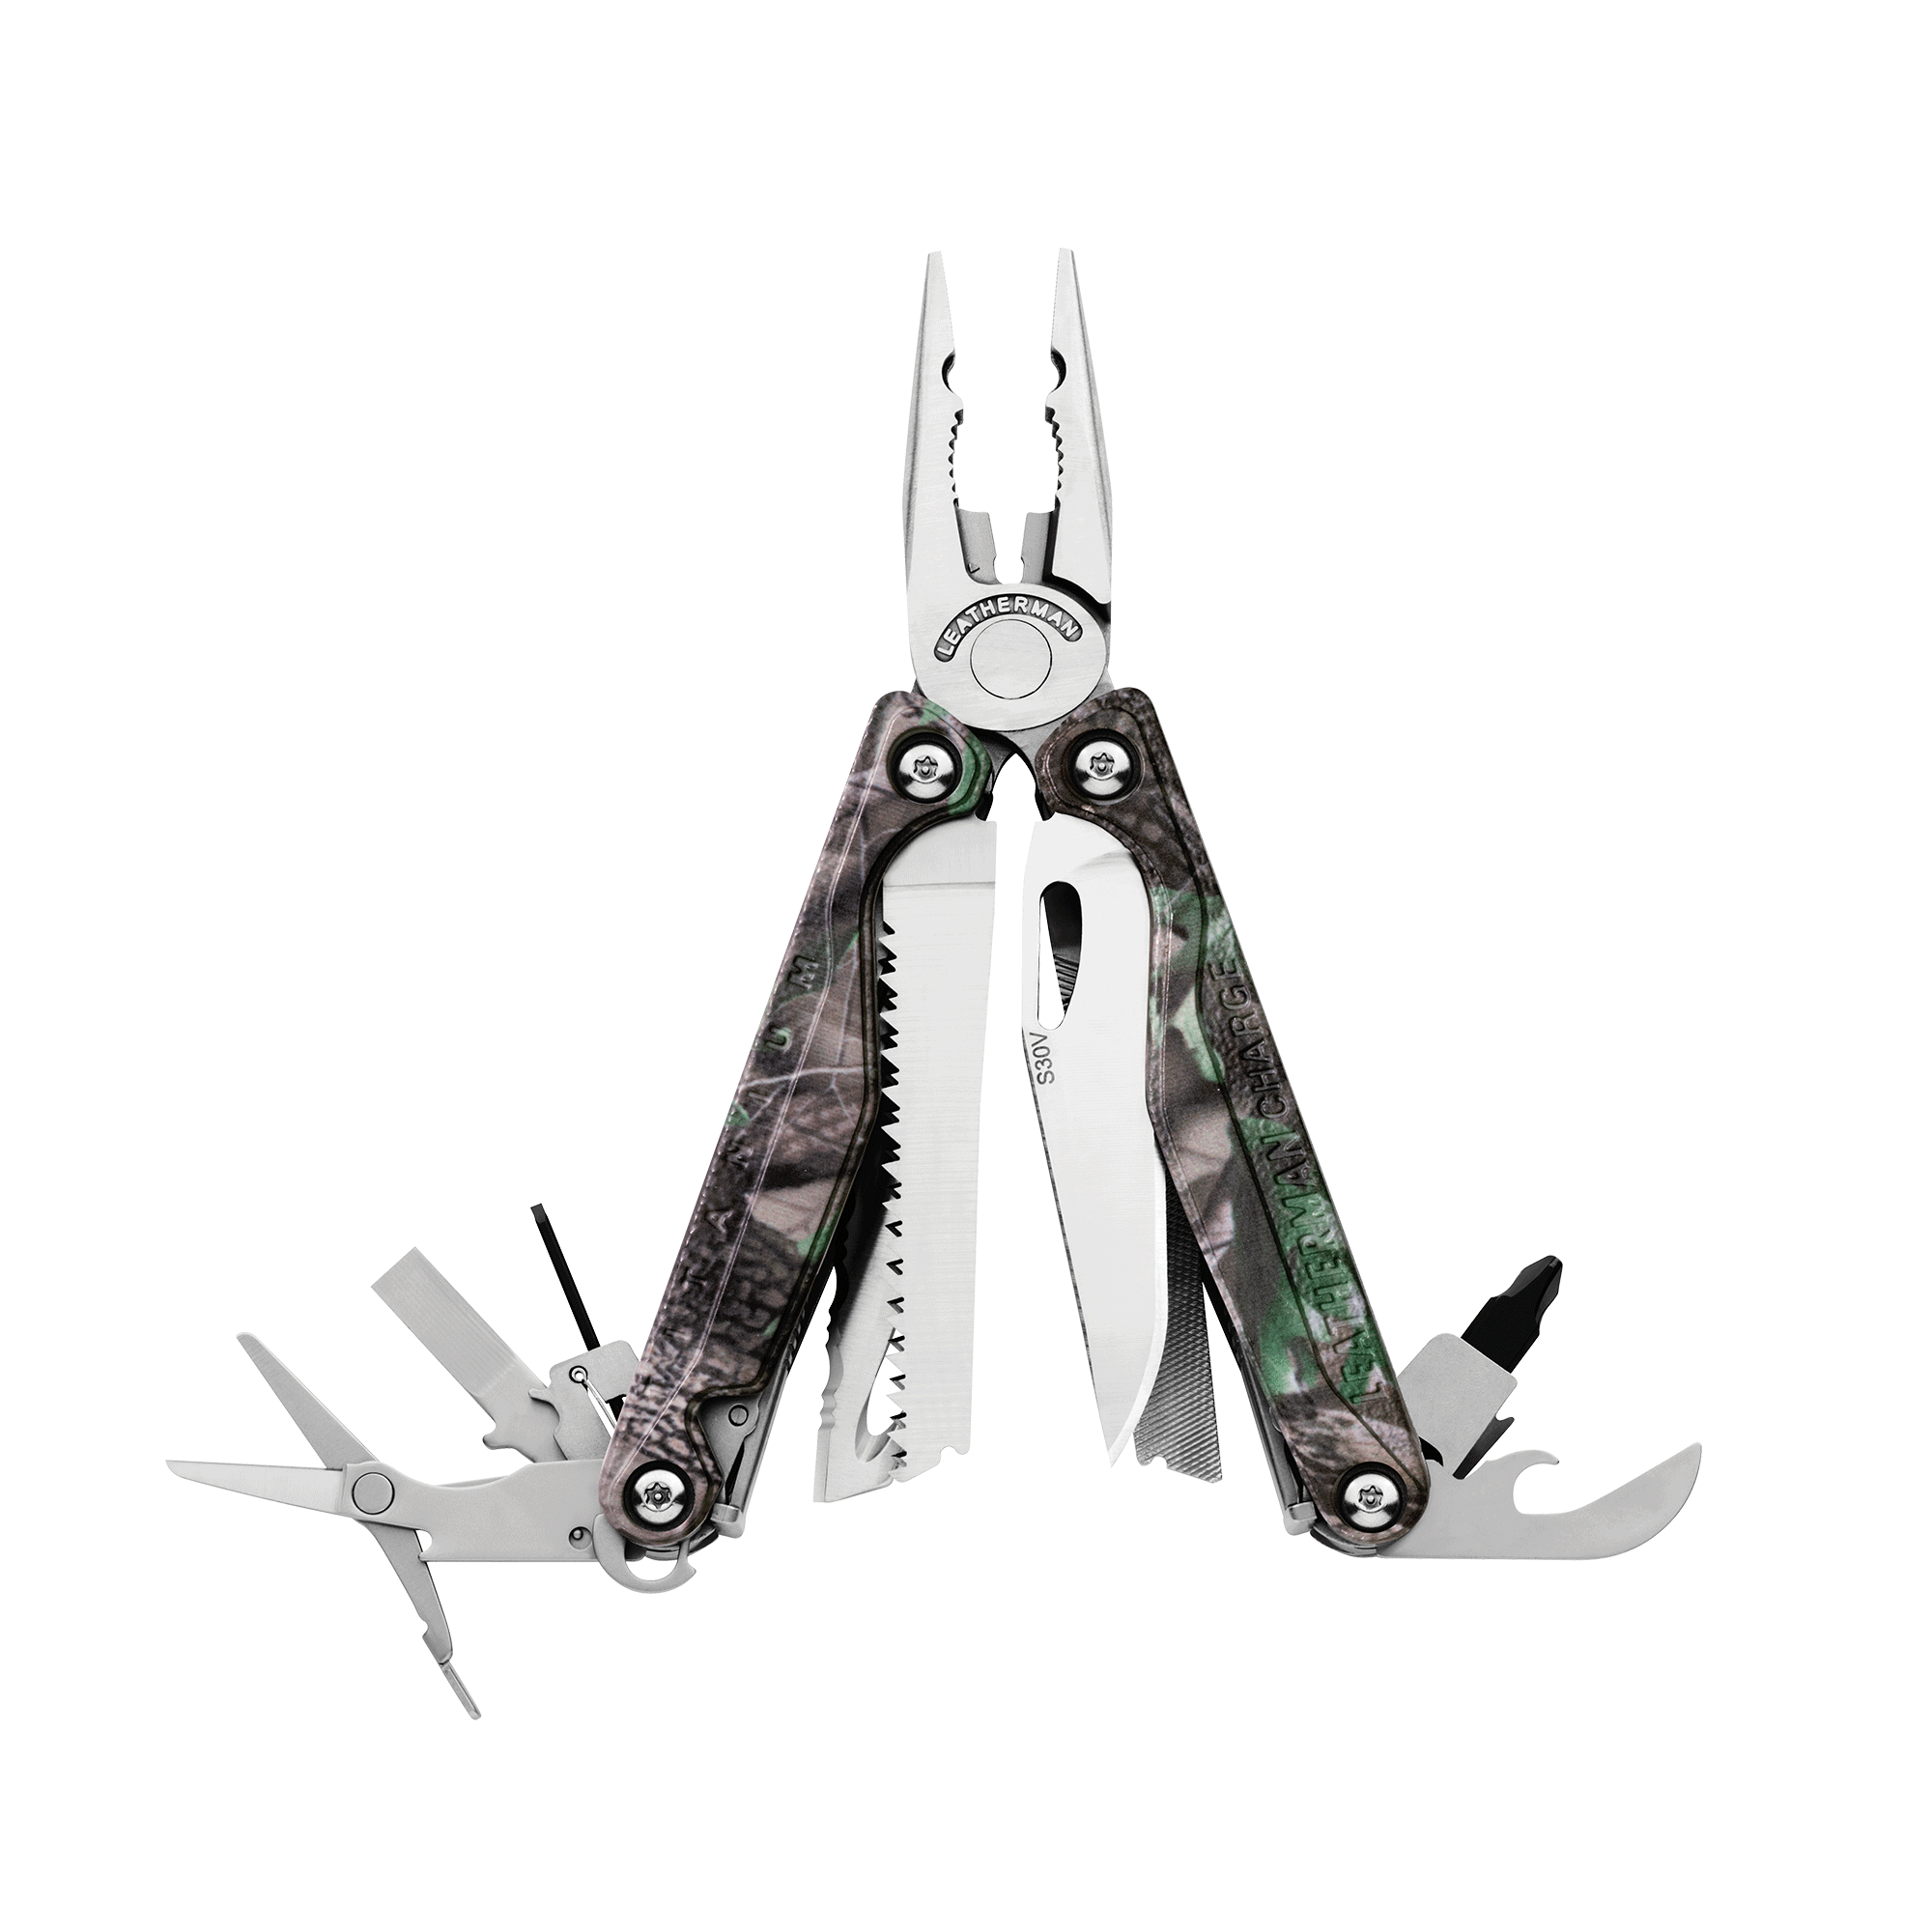 Leatherman Charge TTi multi-tool, open view, Realtree camo print, 18 tools